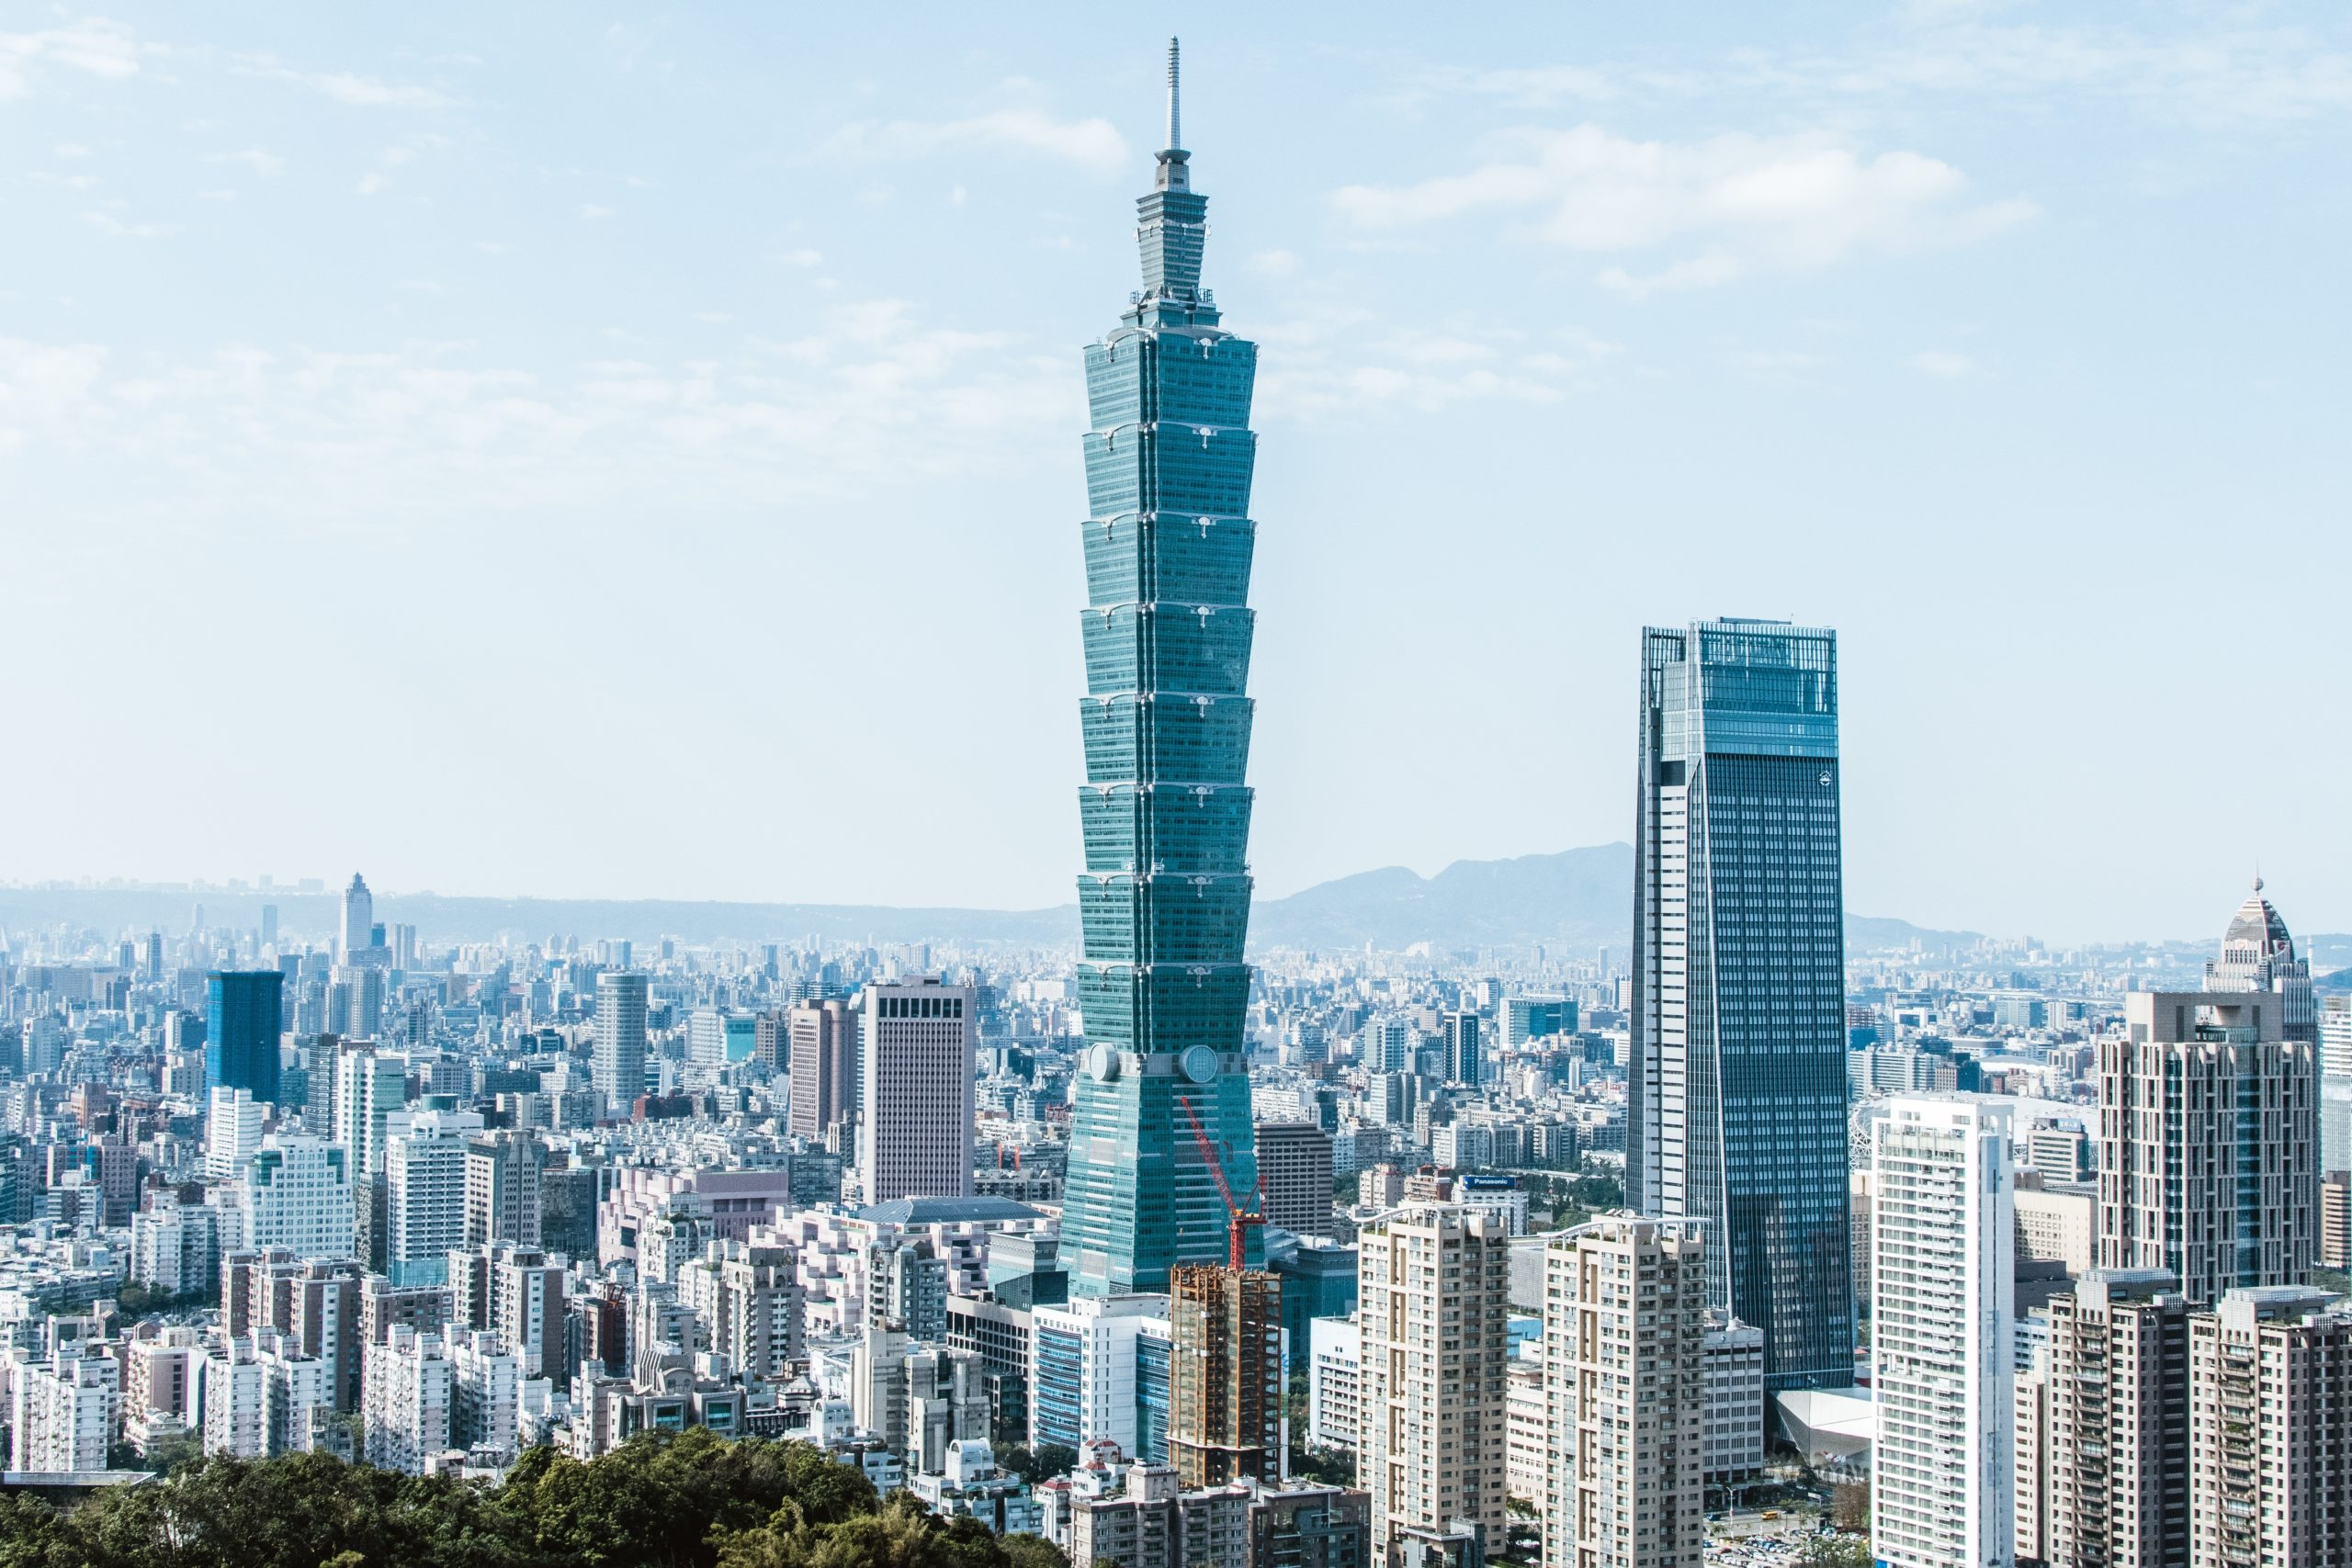 Taiwan Tourism from India – Top Budget Destination for Asian Travellers